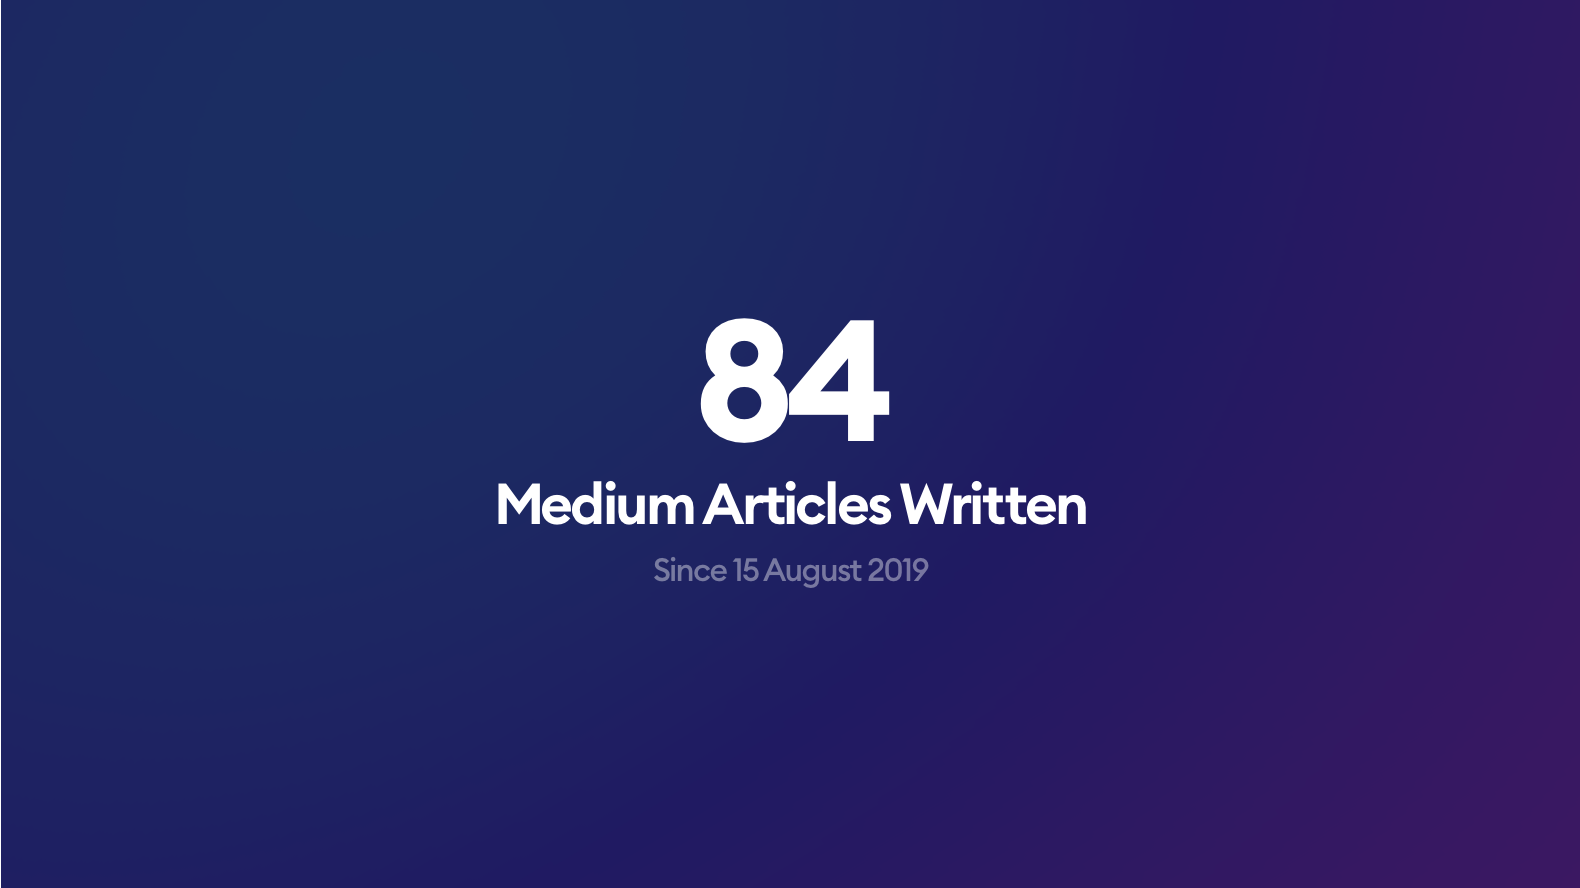 84 articles in 84 weeks